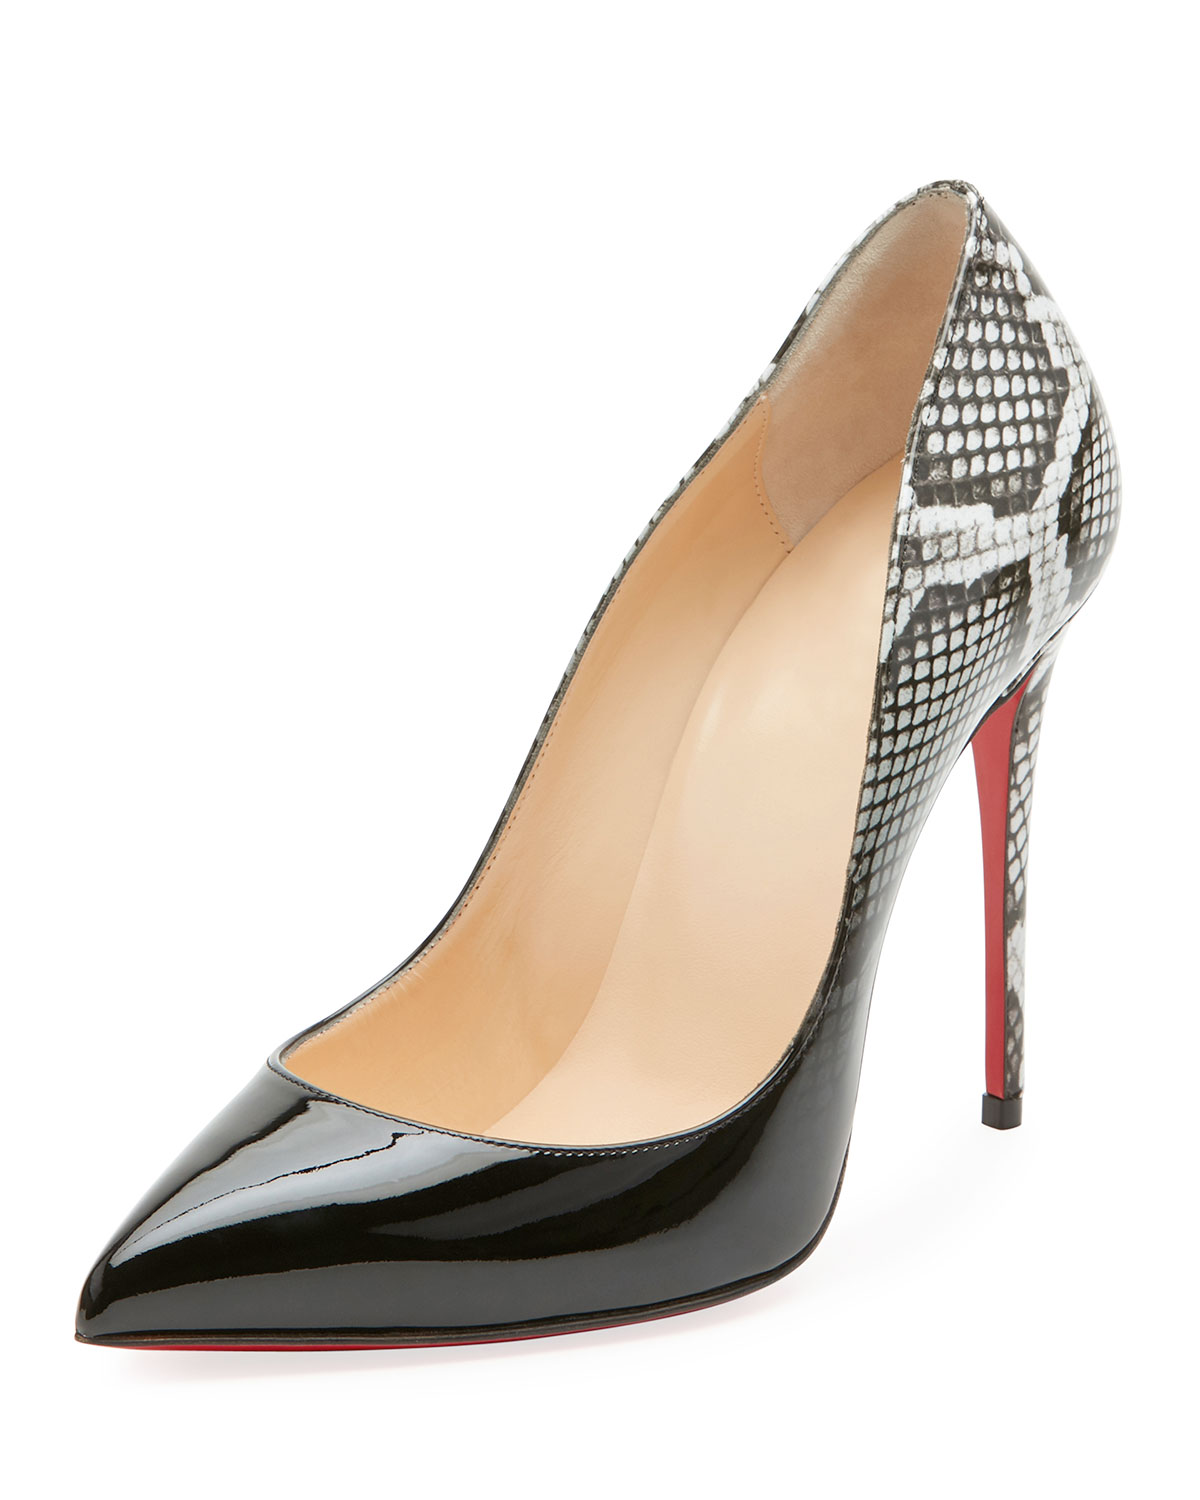 0880cd711b8 Christian Louboutin Pigalle Follies Ombre Snake-Print Red Sole Pump ...